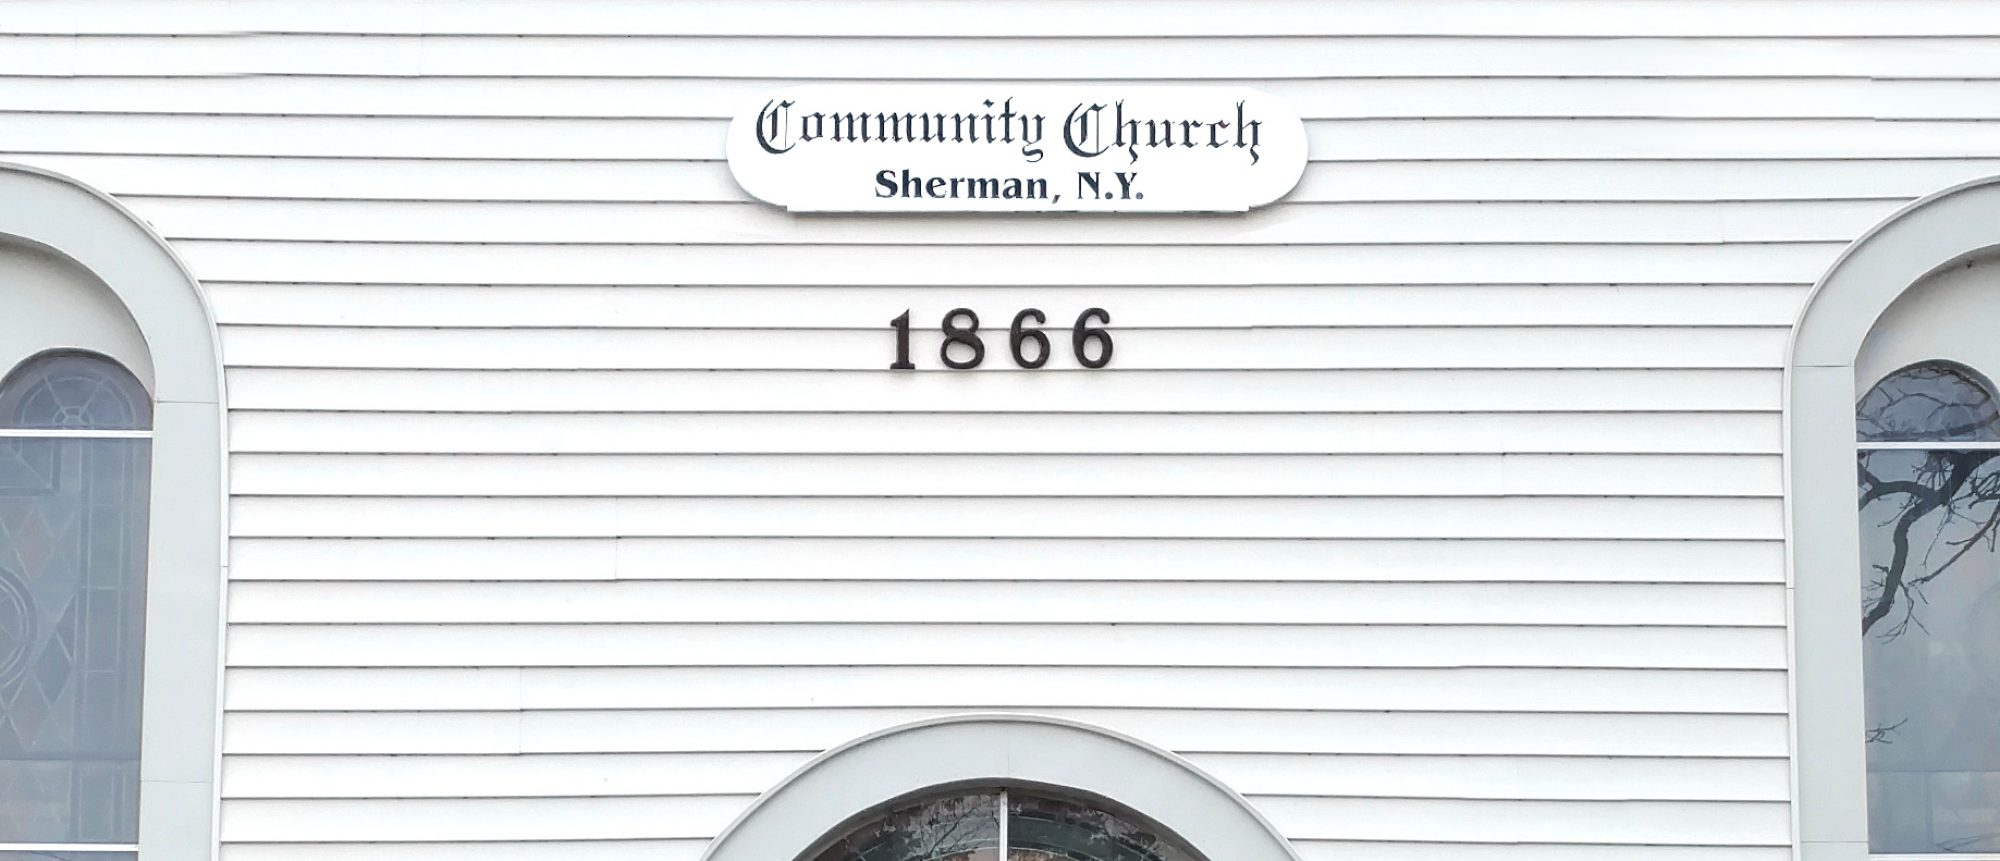 Sherman Community Church